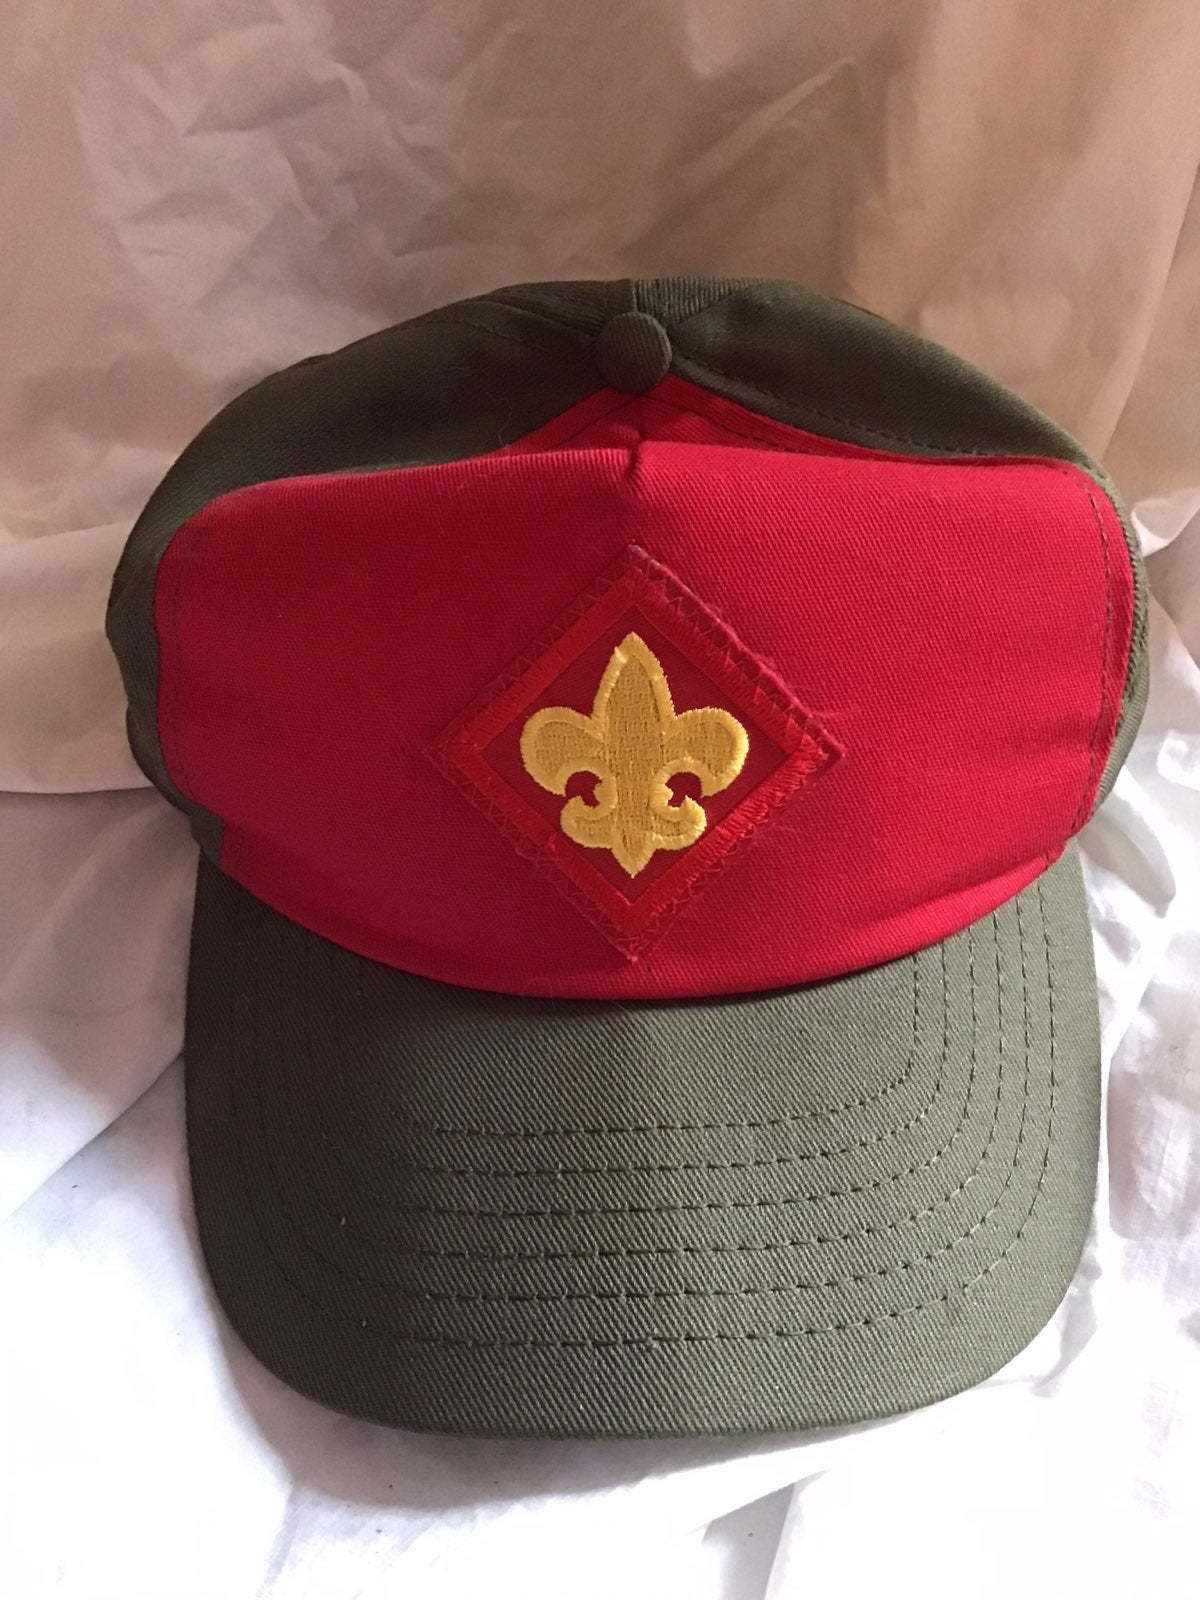 Boy Scout Hat Very Good condition